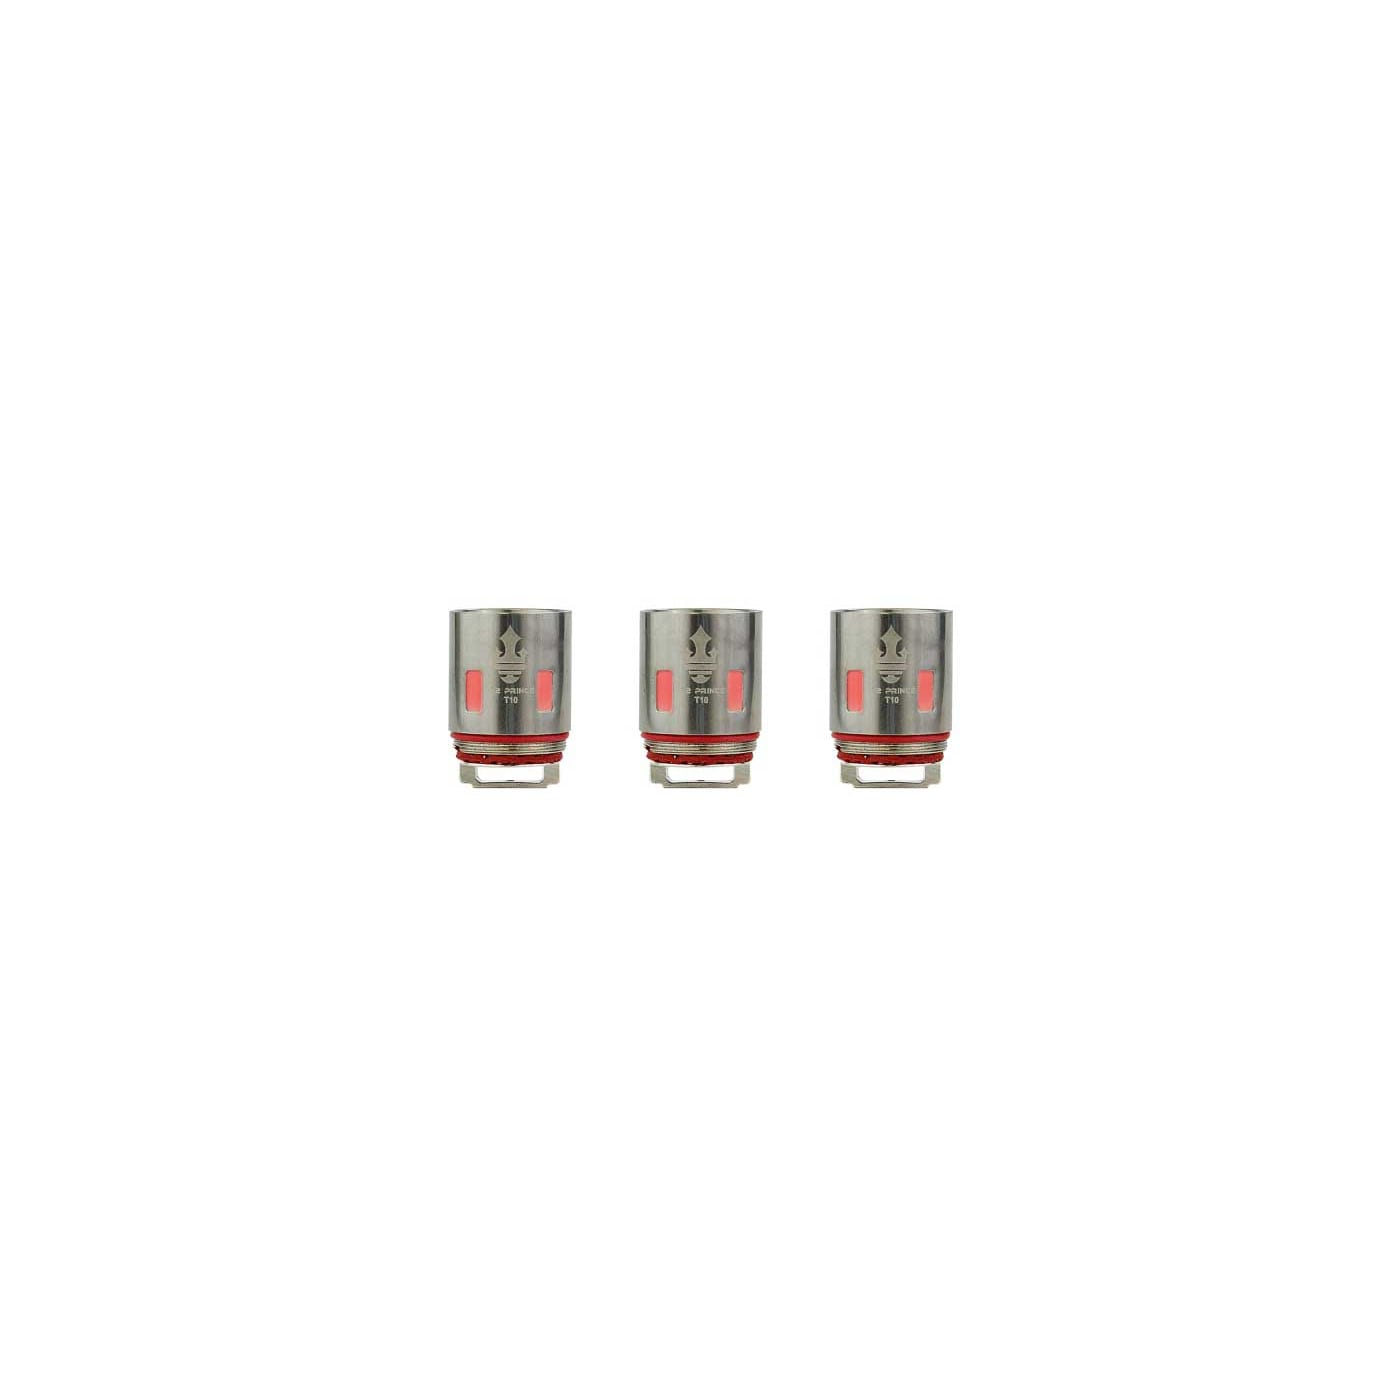 Smok TFV12 Prince T10 Light Replacement Coils - 3 Pack